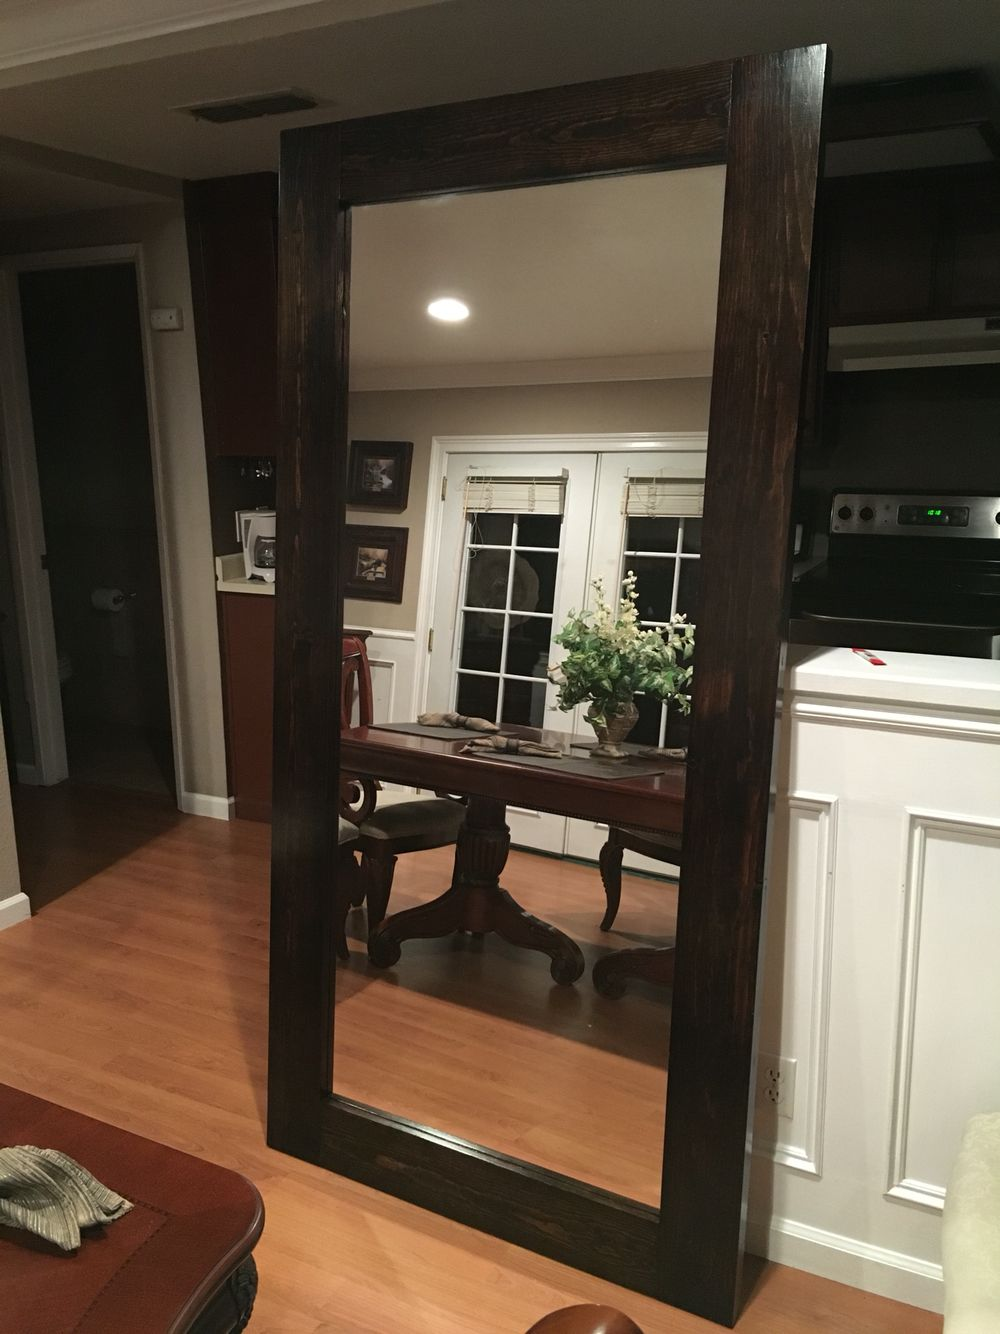 Diy Large Standing Floor Mirror From S Wood And Old Closet Door Cost About 40